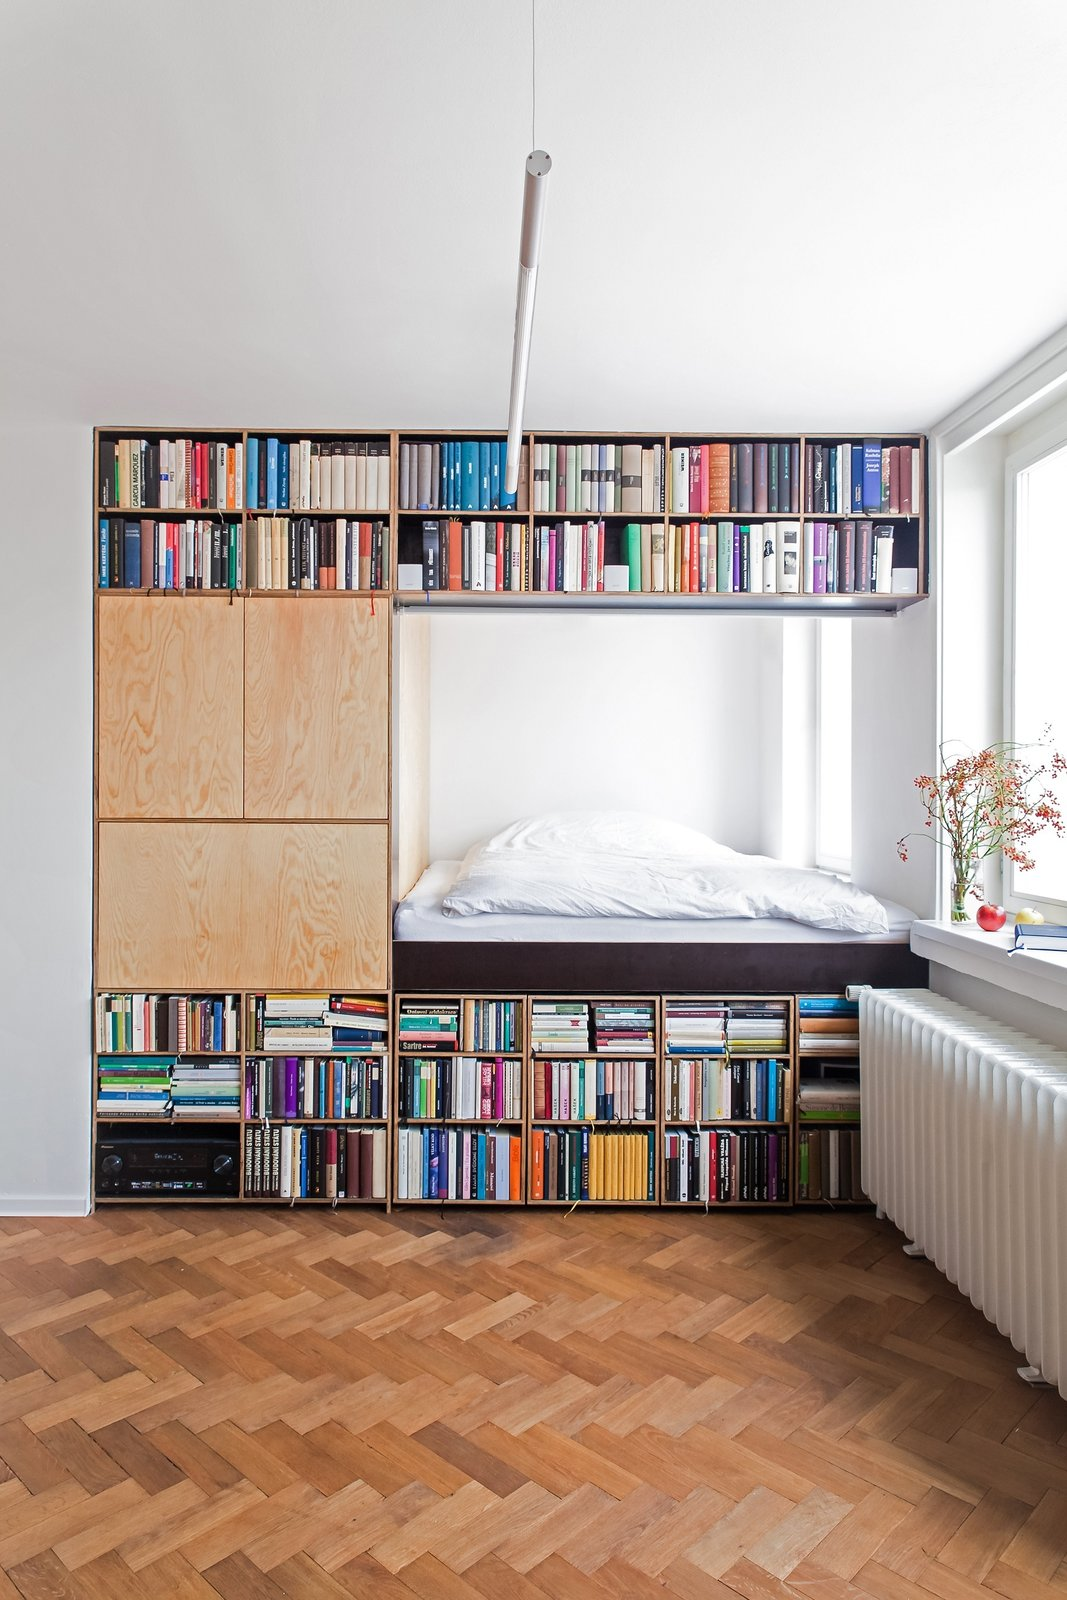 BY Architects RK 13-Apartment for a Writer p 84  Photo 11 of 16 in Gestalten's New Book Shows How to Transform Small Spaces Into Design Marvels